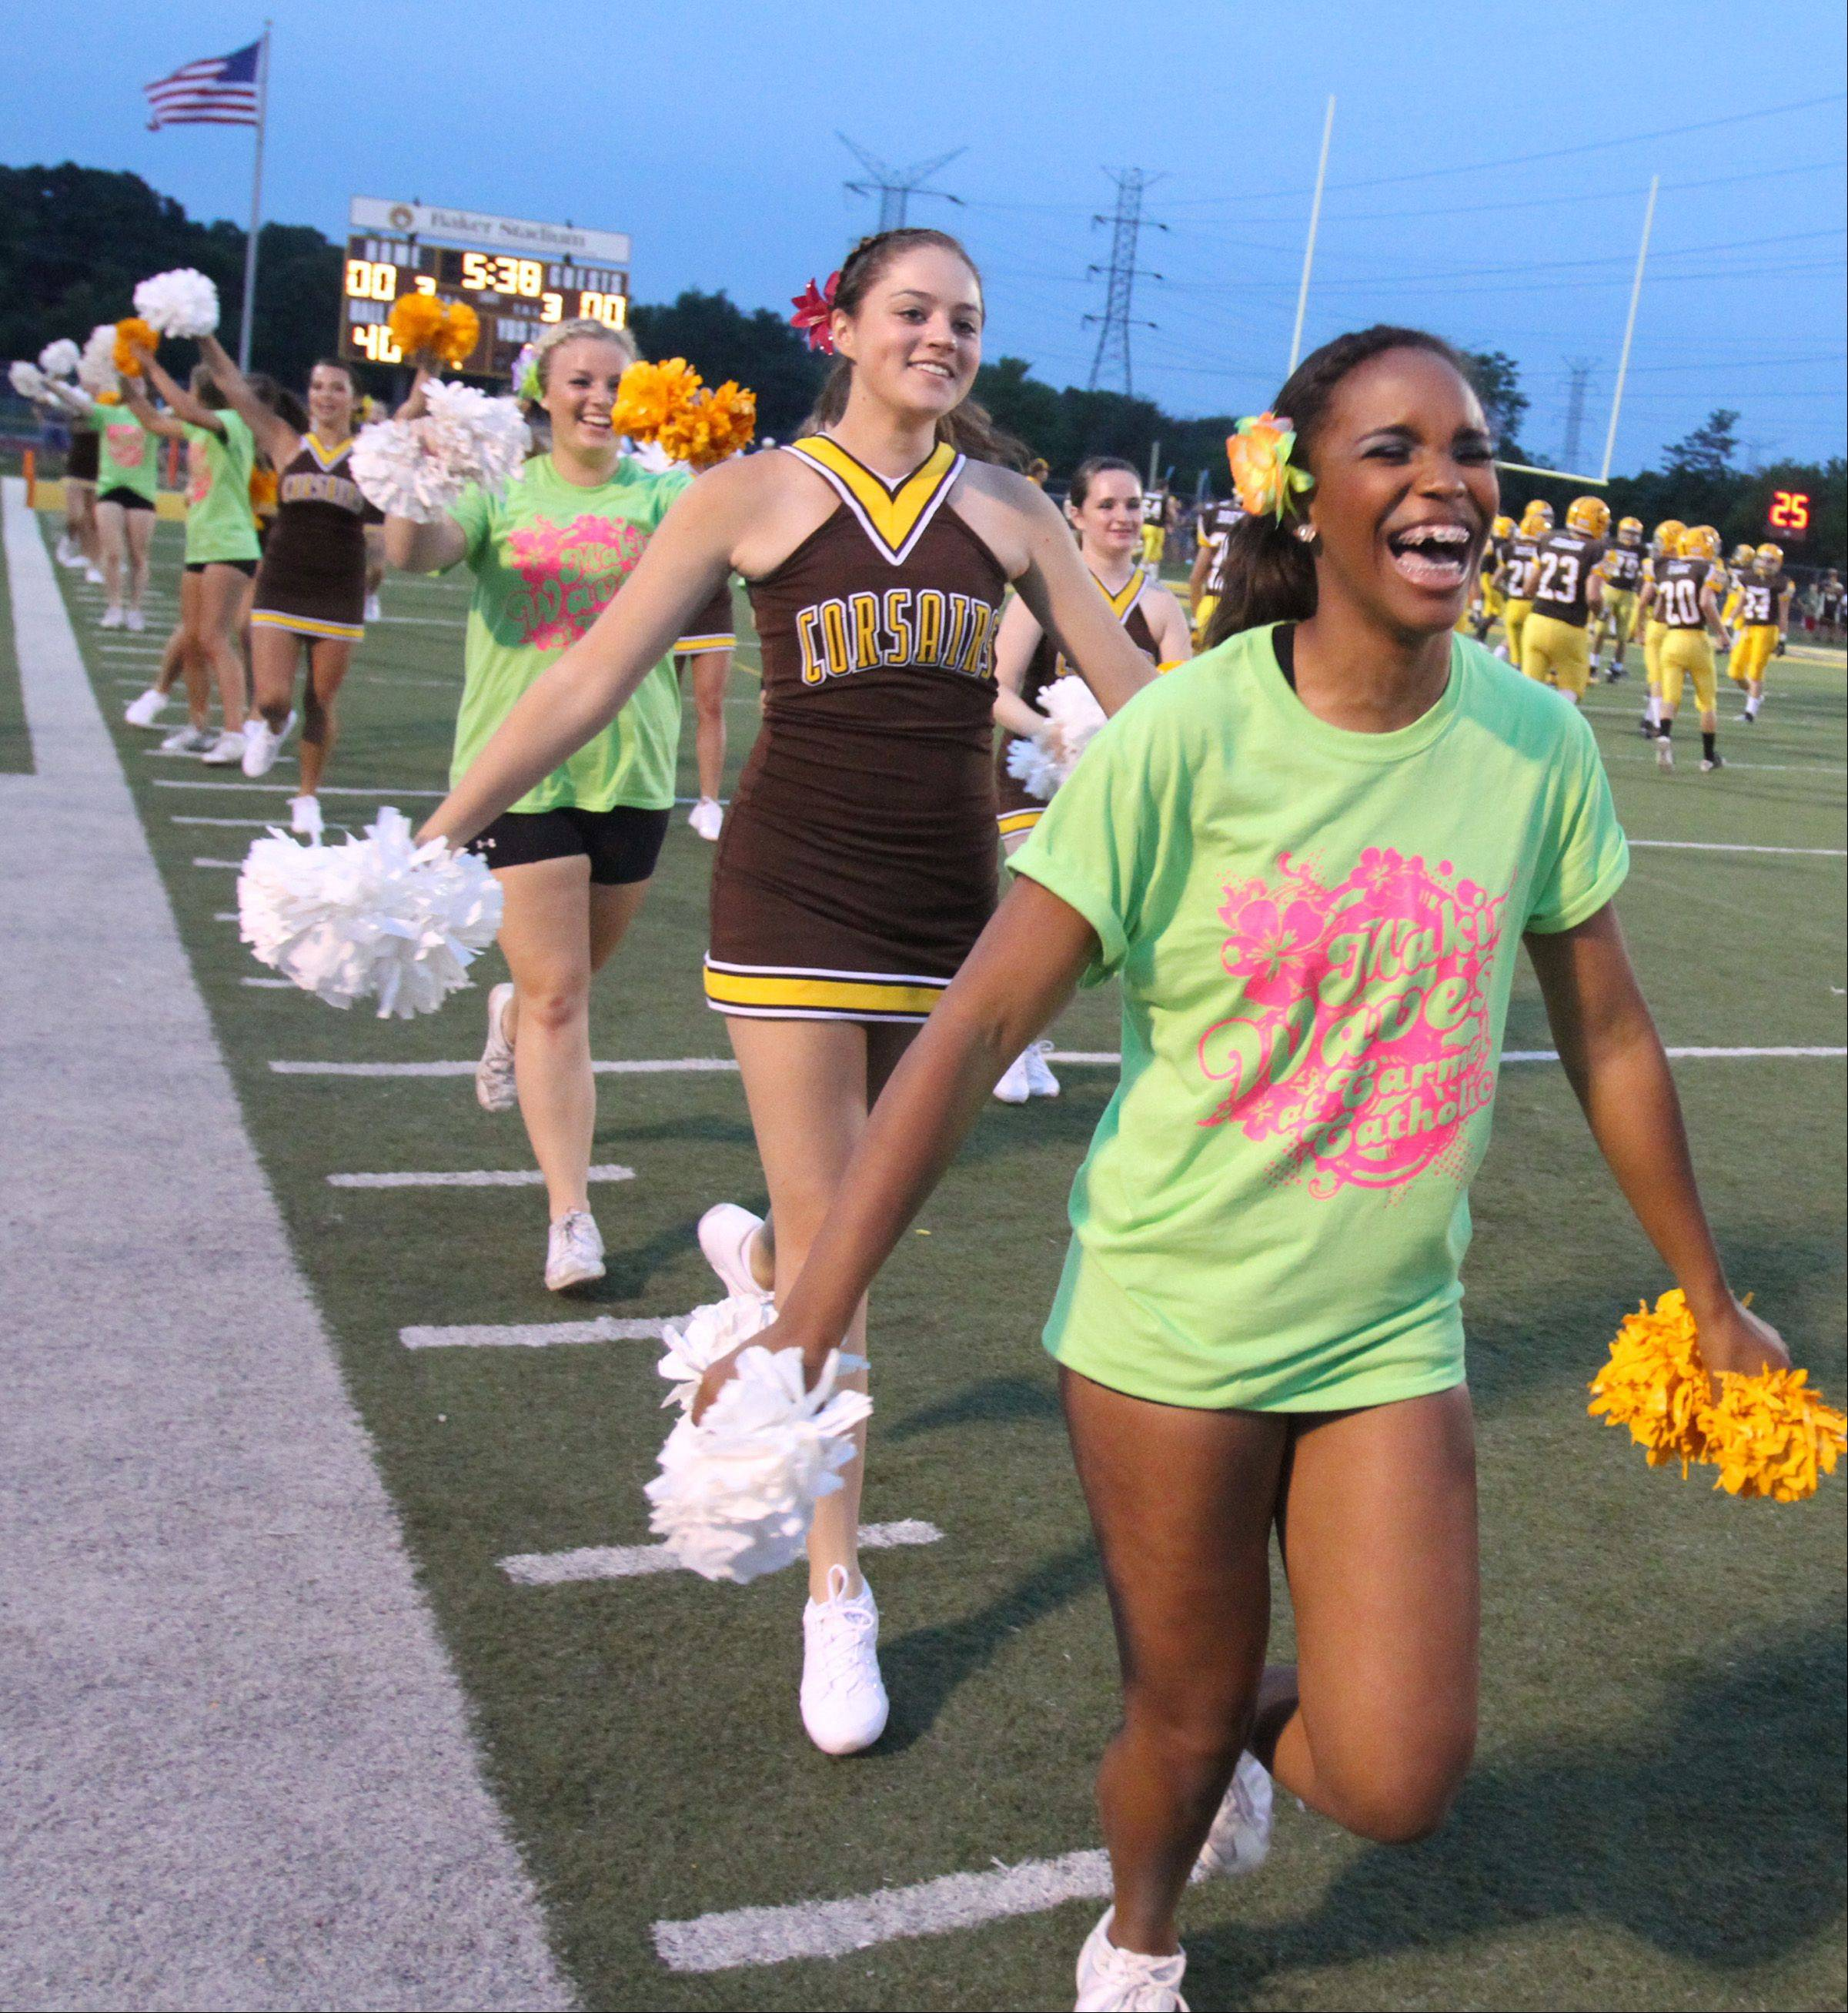 Week -2- Photos from the Glenbard North at Carmel football game Friday, August 31 in Mundelein.